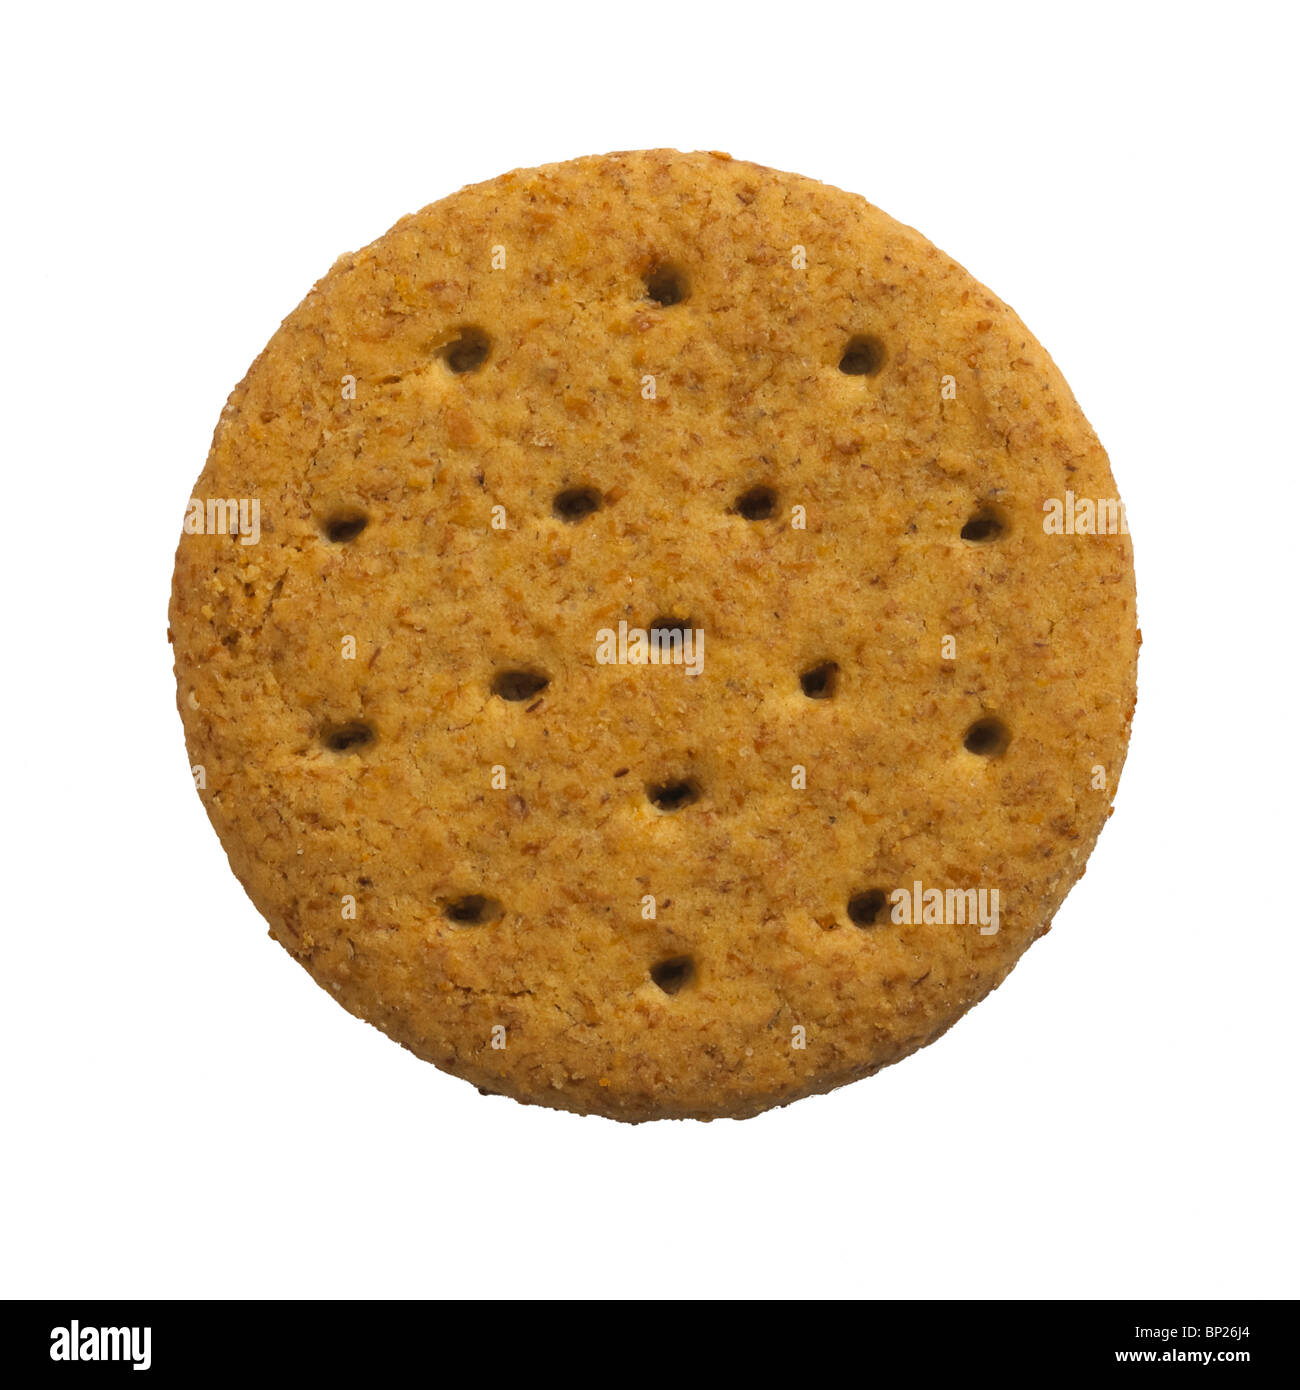 SINGLE RICH TEA MALTED BISCUIT ON WHITE BACKGROUND - Stock Image